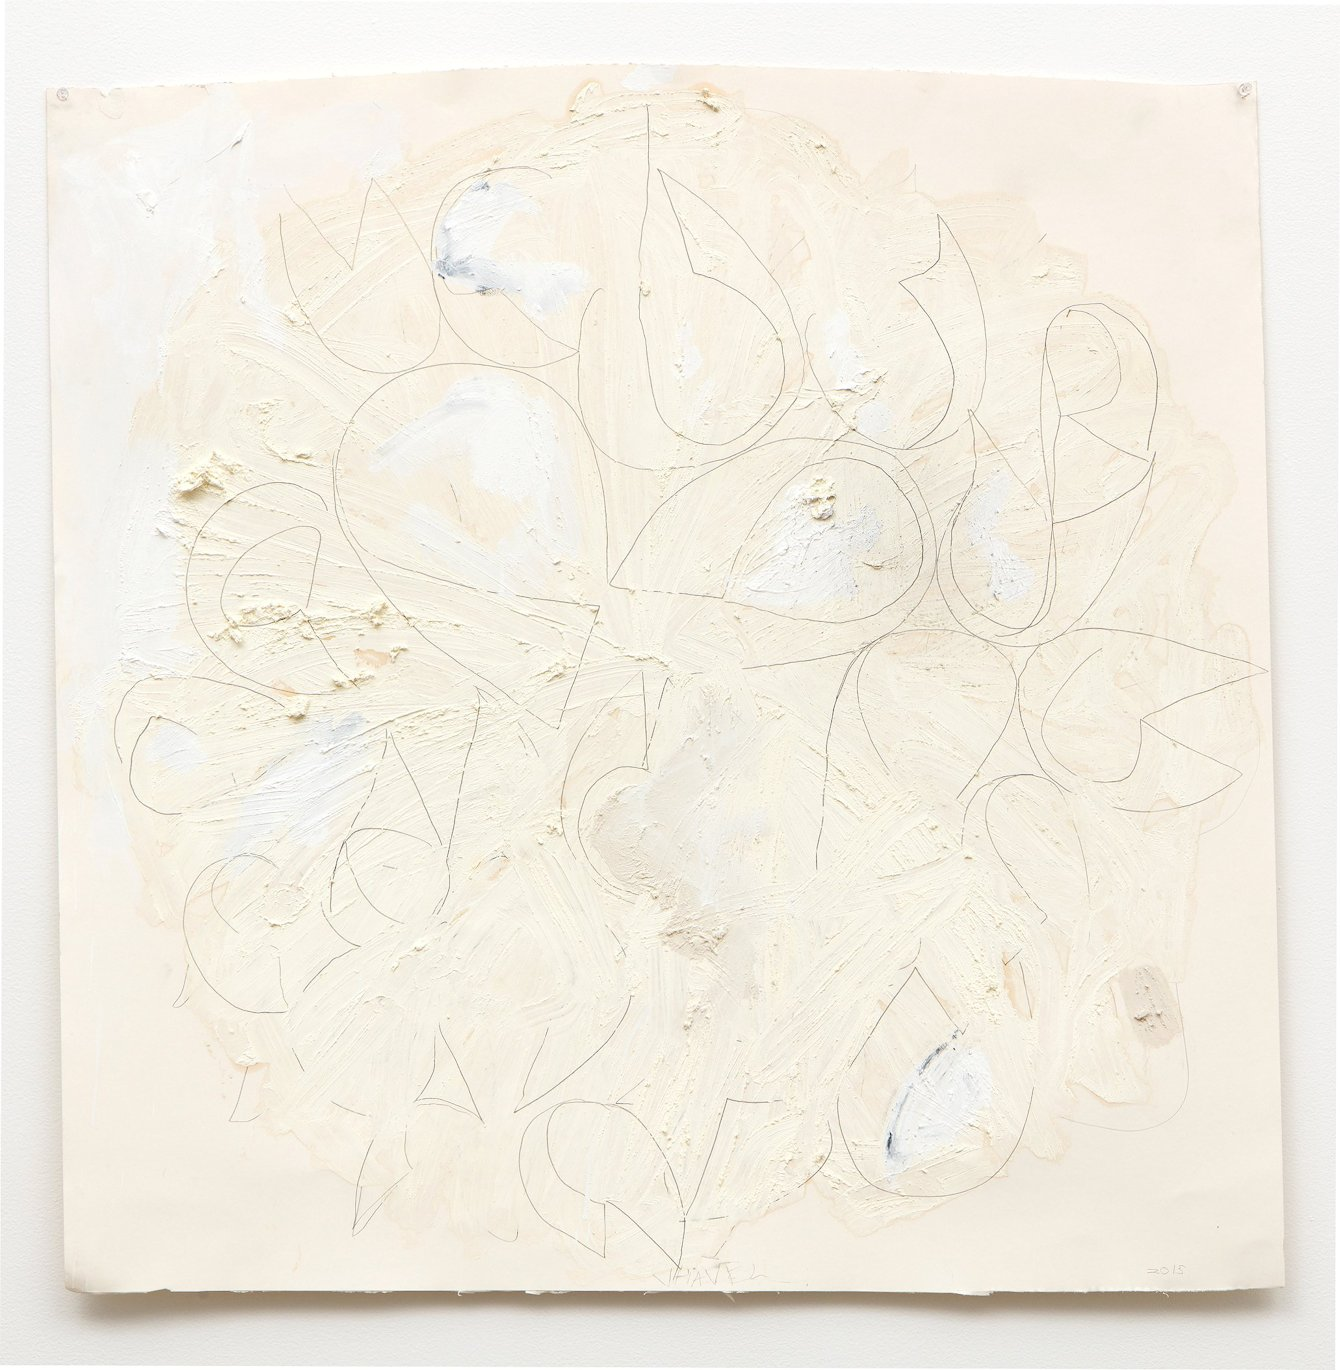 Joseph Havel, Thistle 5, 2015, graphite, oil paint, and oil stick on paper, 36 x 36 inches